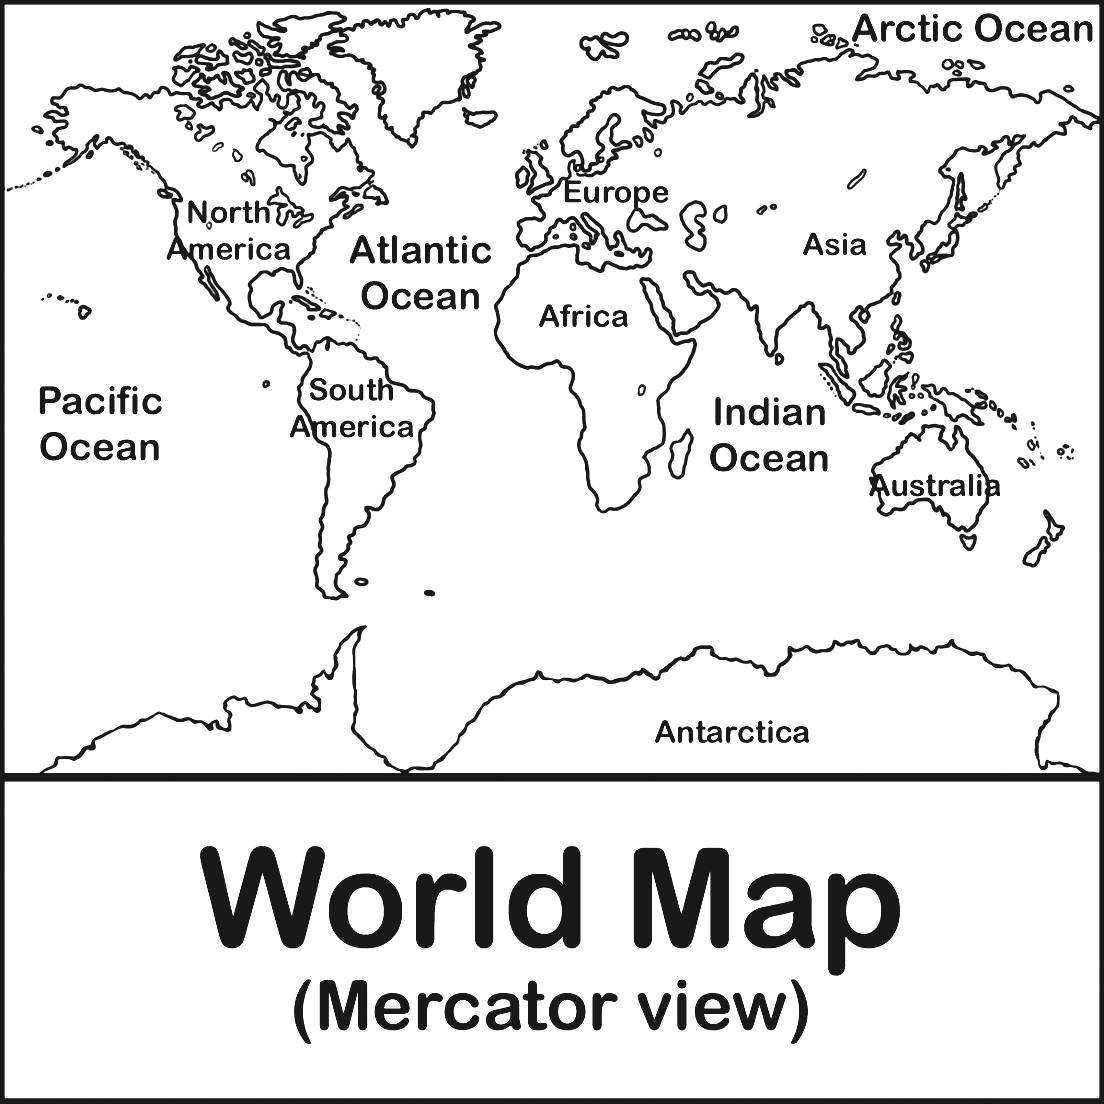 World map drawing at getdrawings free for personal use world 1104x1104 drawn map black and white gumiabroncs Gallery